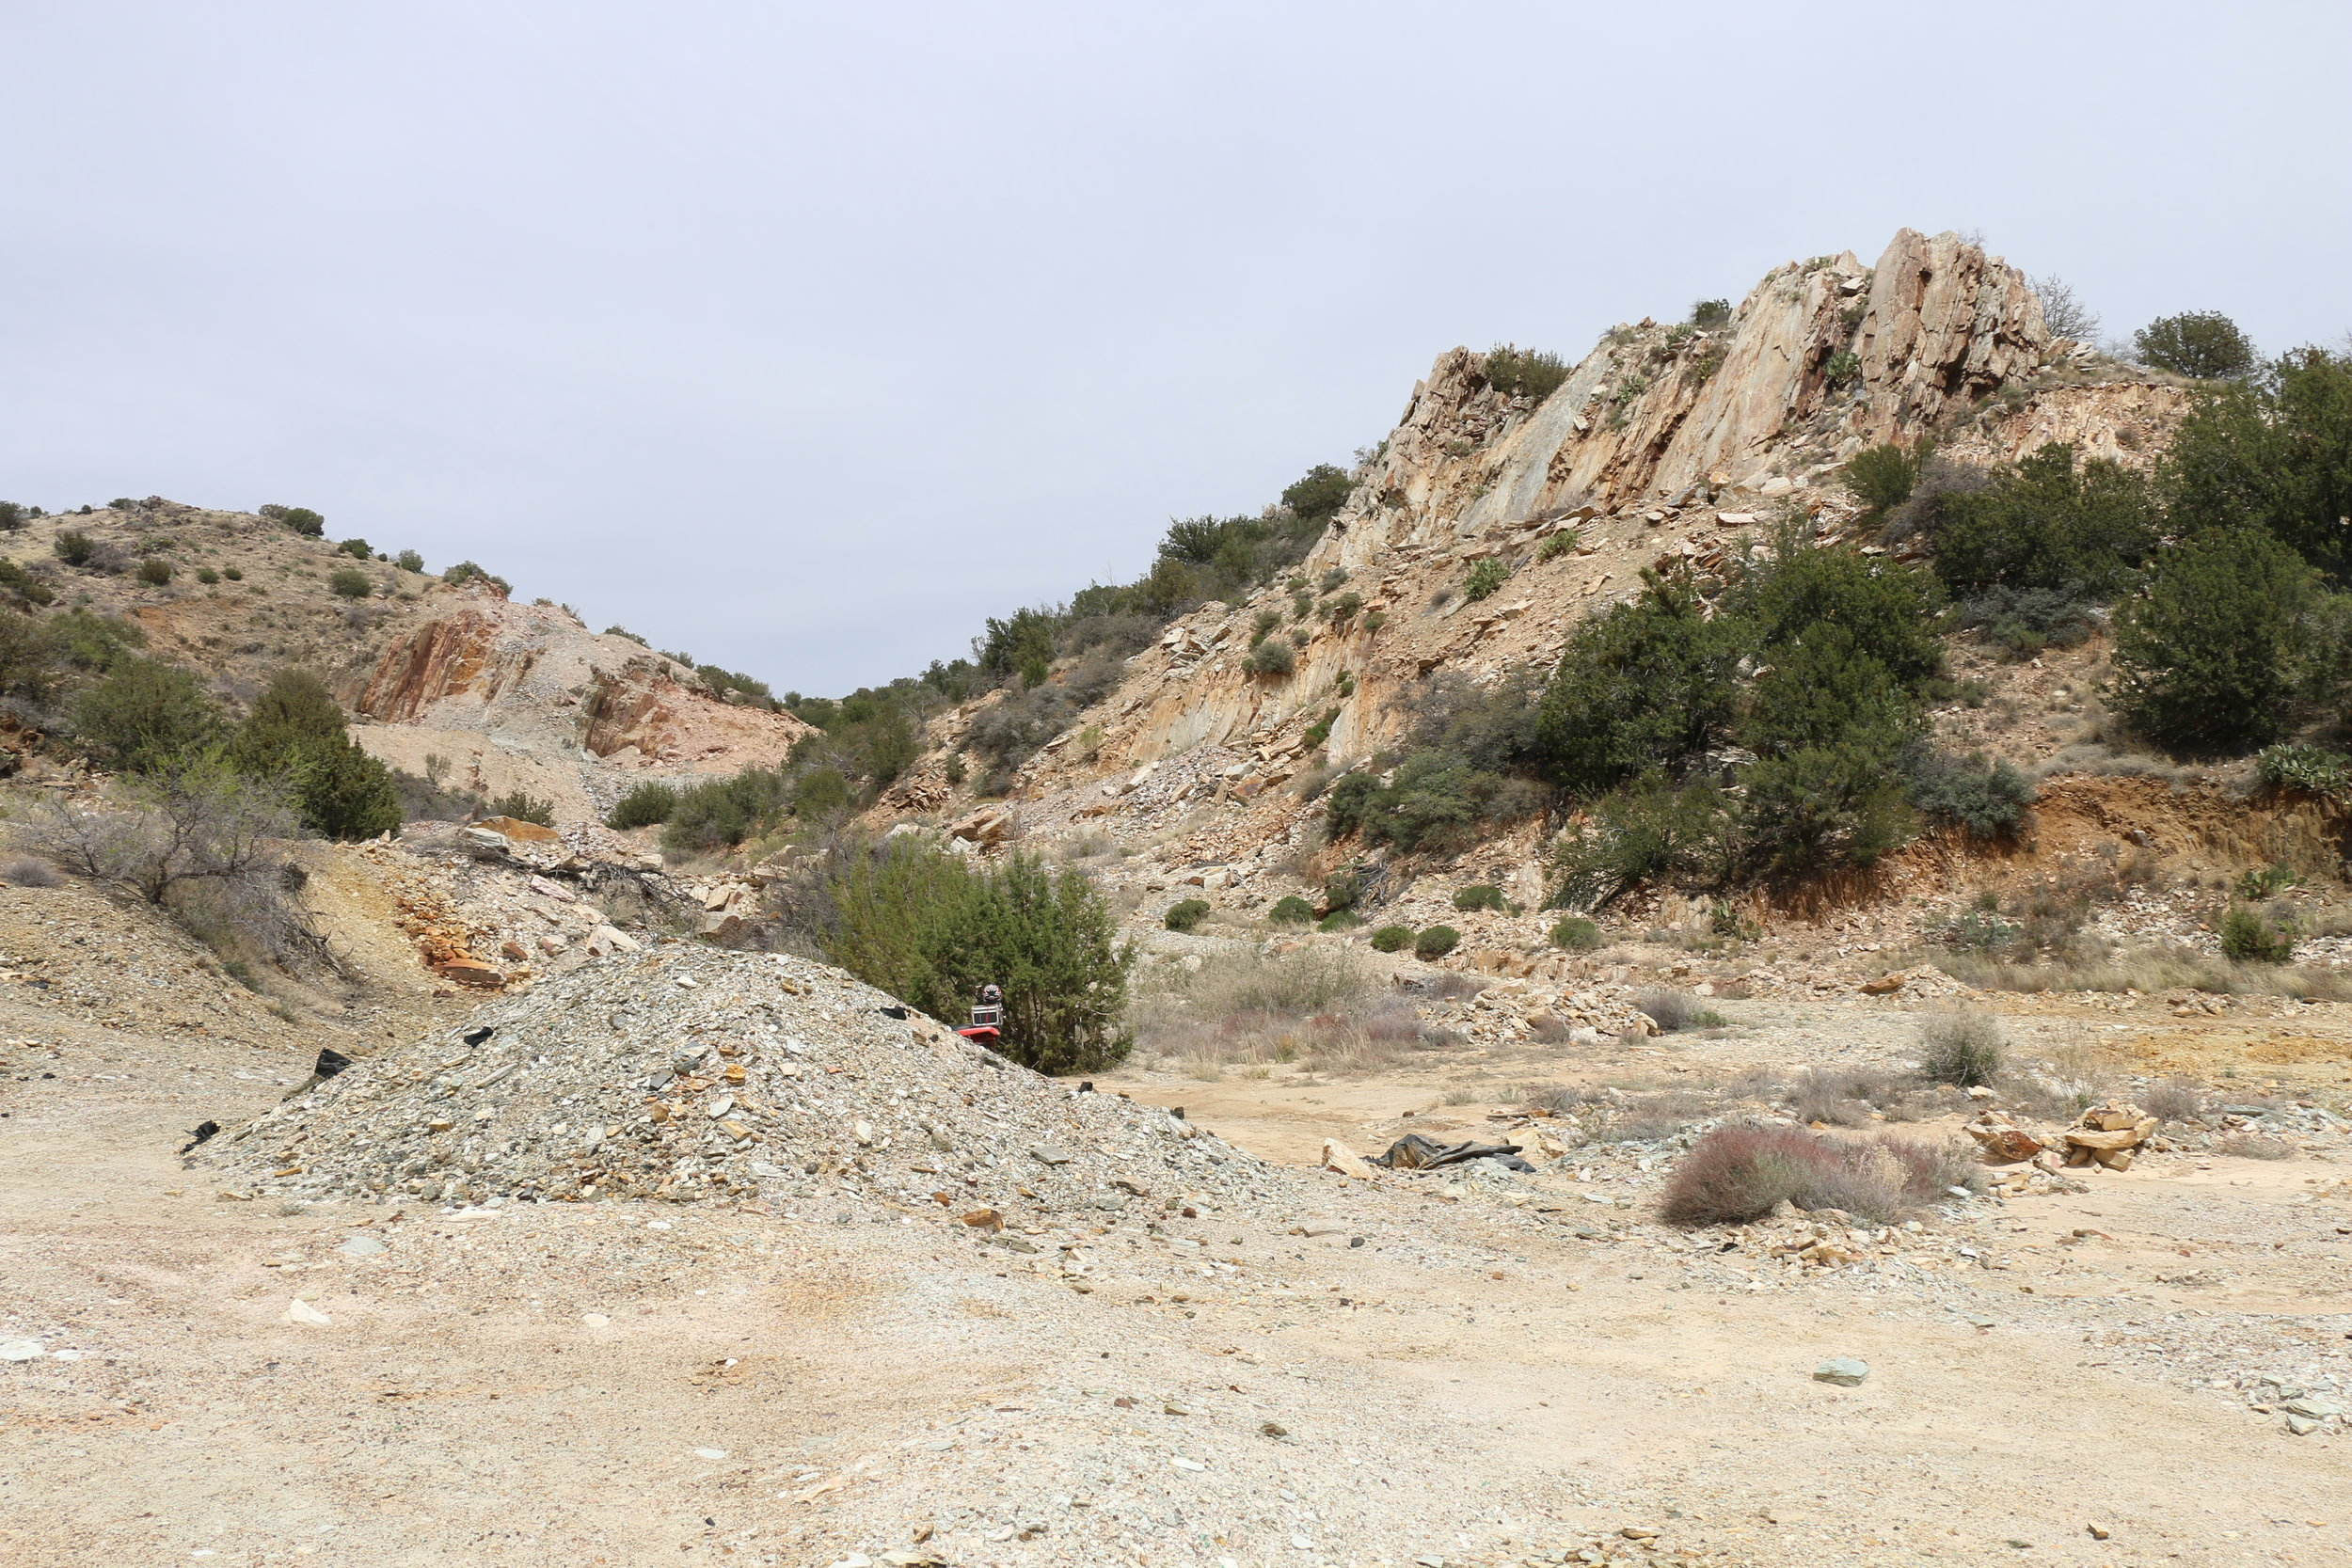 Looking north at the Blue Bell mine/quarry ruins.